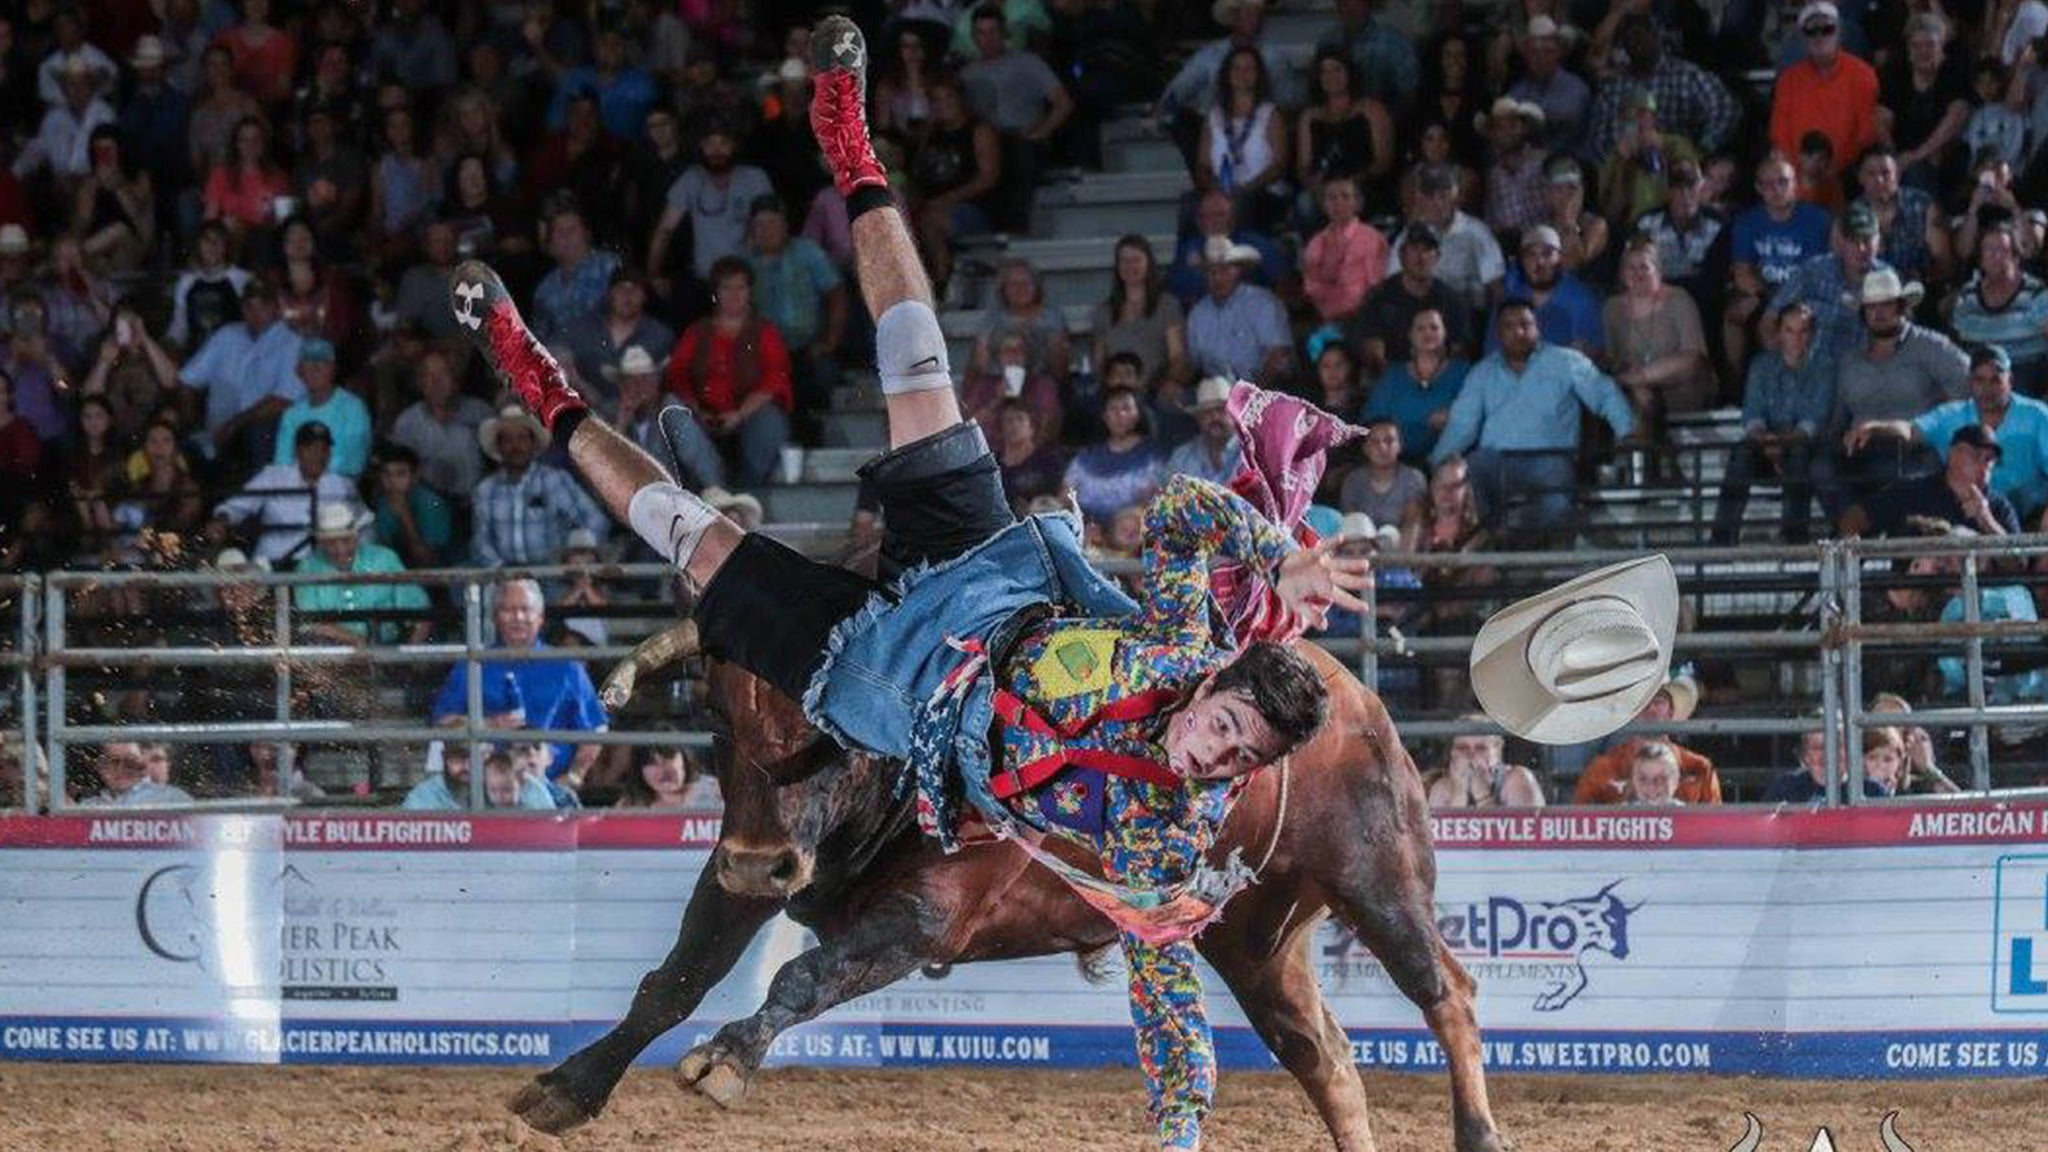 American Freestyle Bullfighting at Swiftel Center